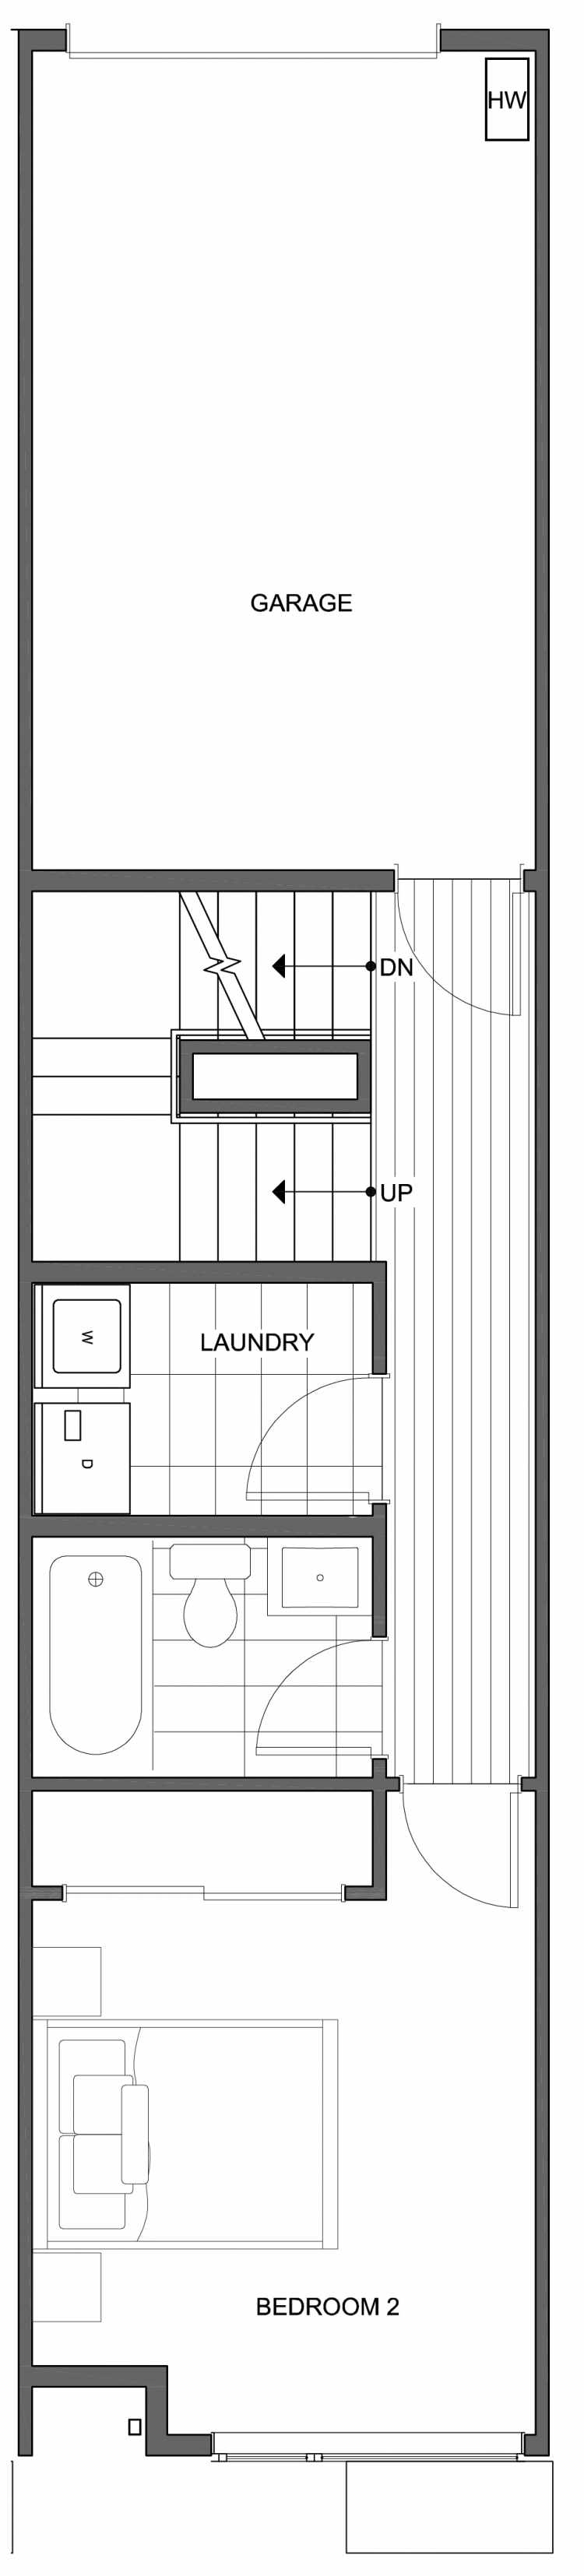 Second Floor Plan of 806F N 46th St, One of the Nino 15 East Townhomes by Isola Homes